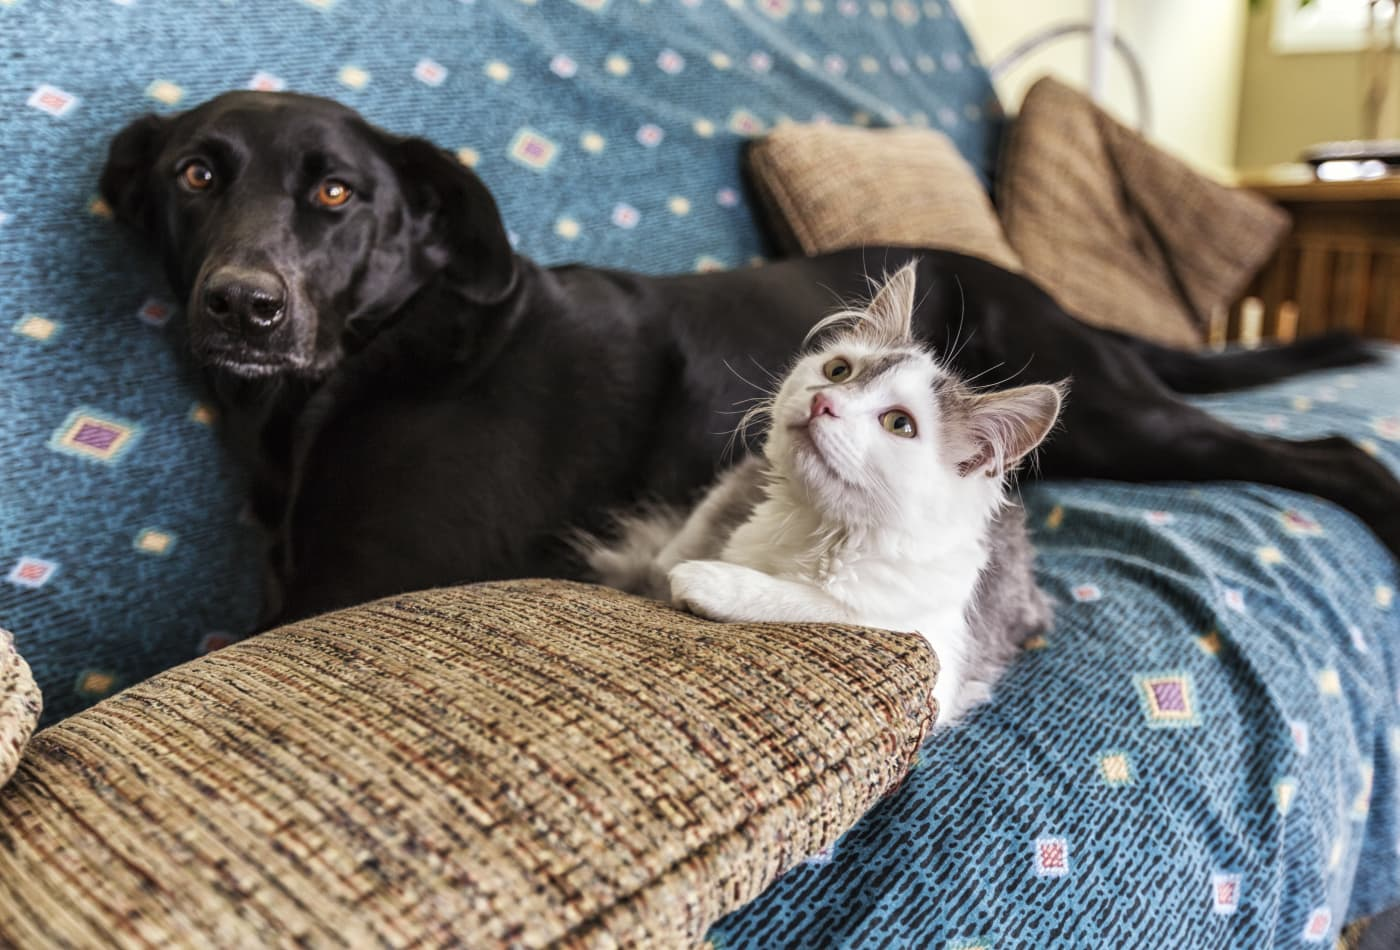 'How often should I clean my dog?' 'Do pets need face masks?': What to know about your pet and Covid-19